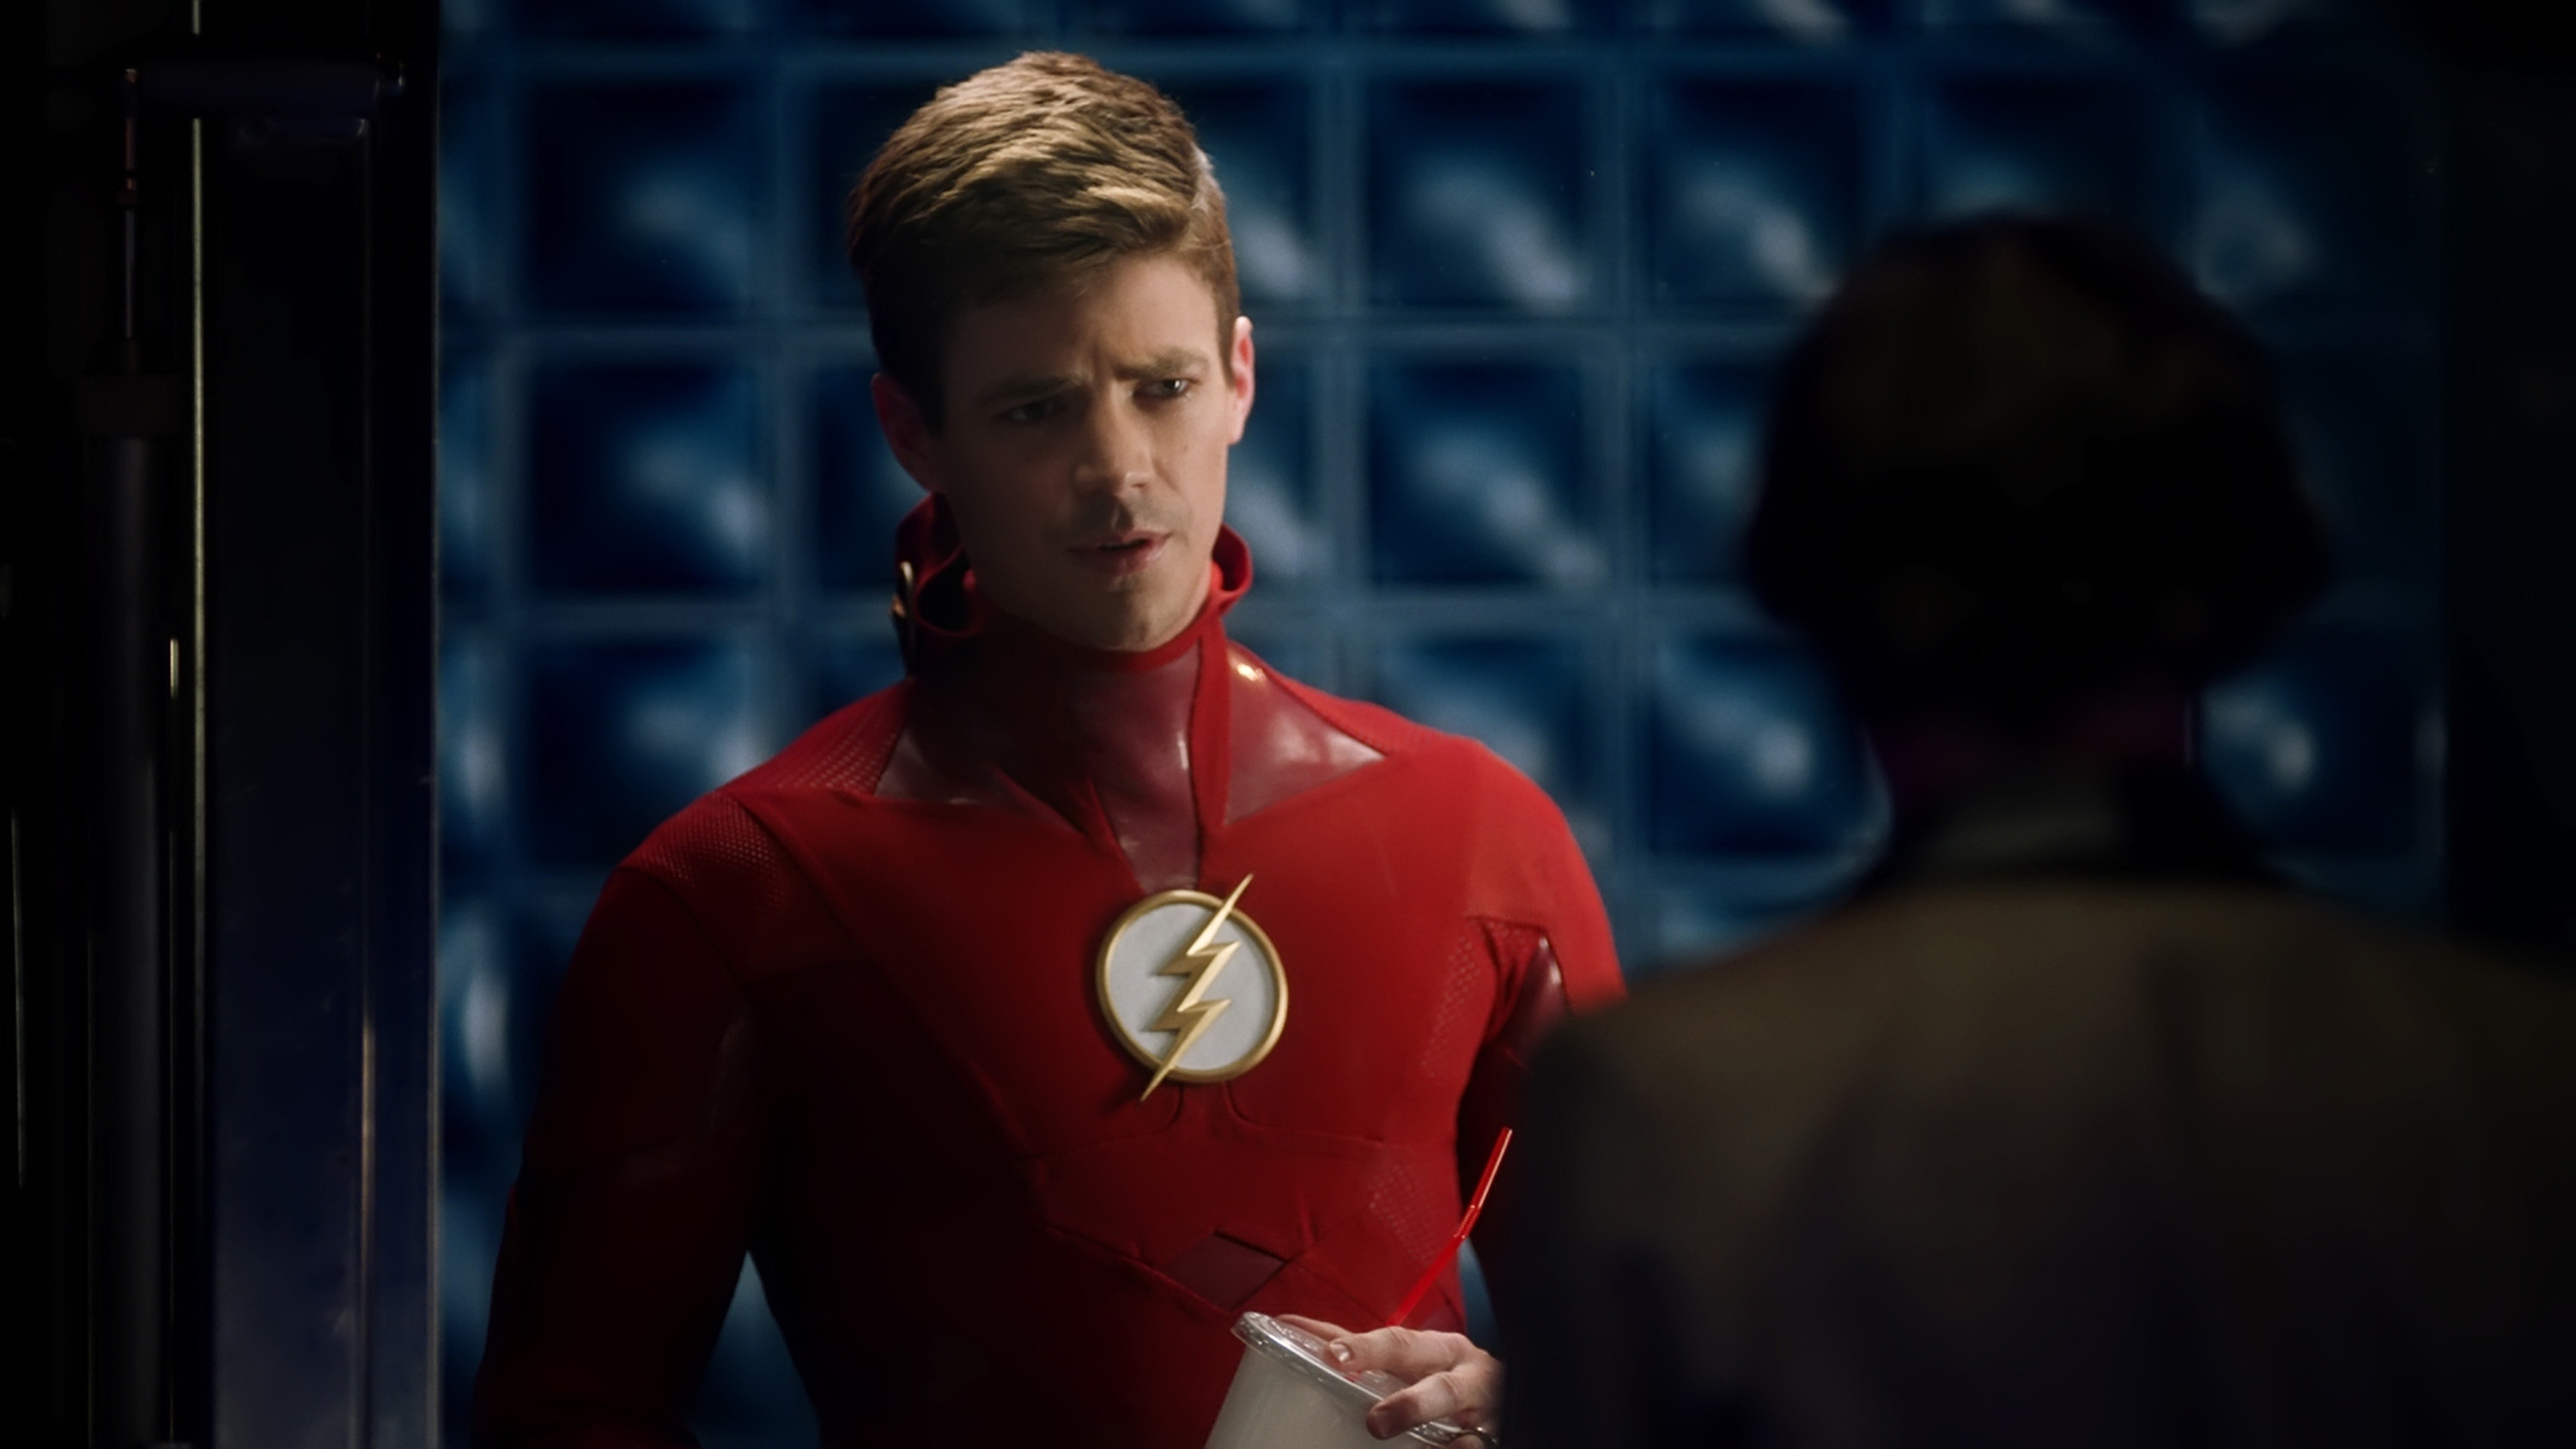 THE FLASH: Cicada's On A Killing Spree In The New Promo For Season 5